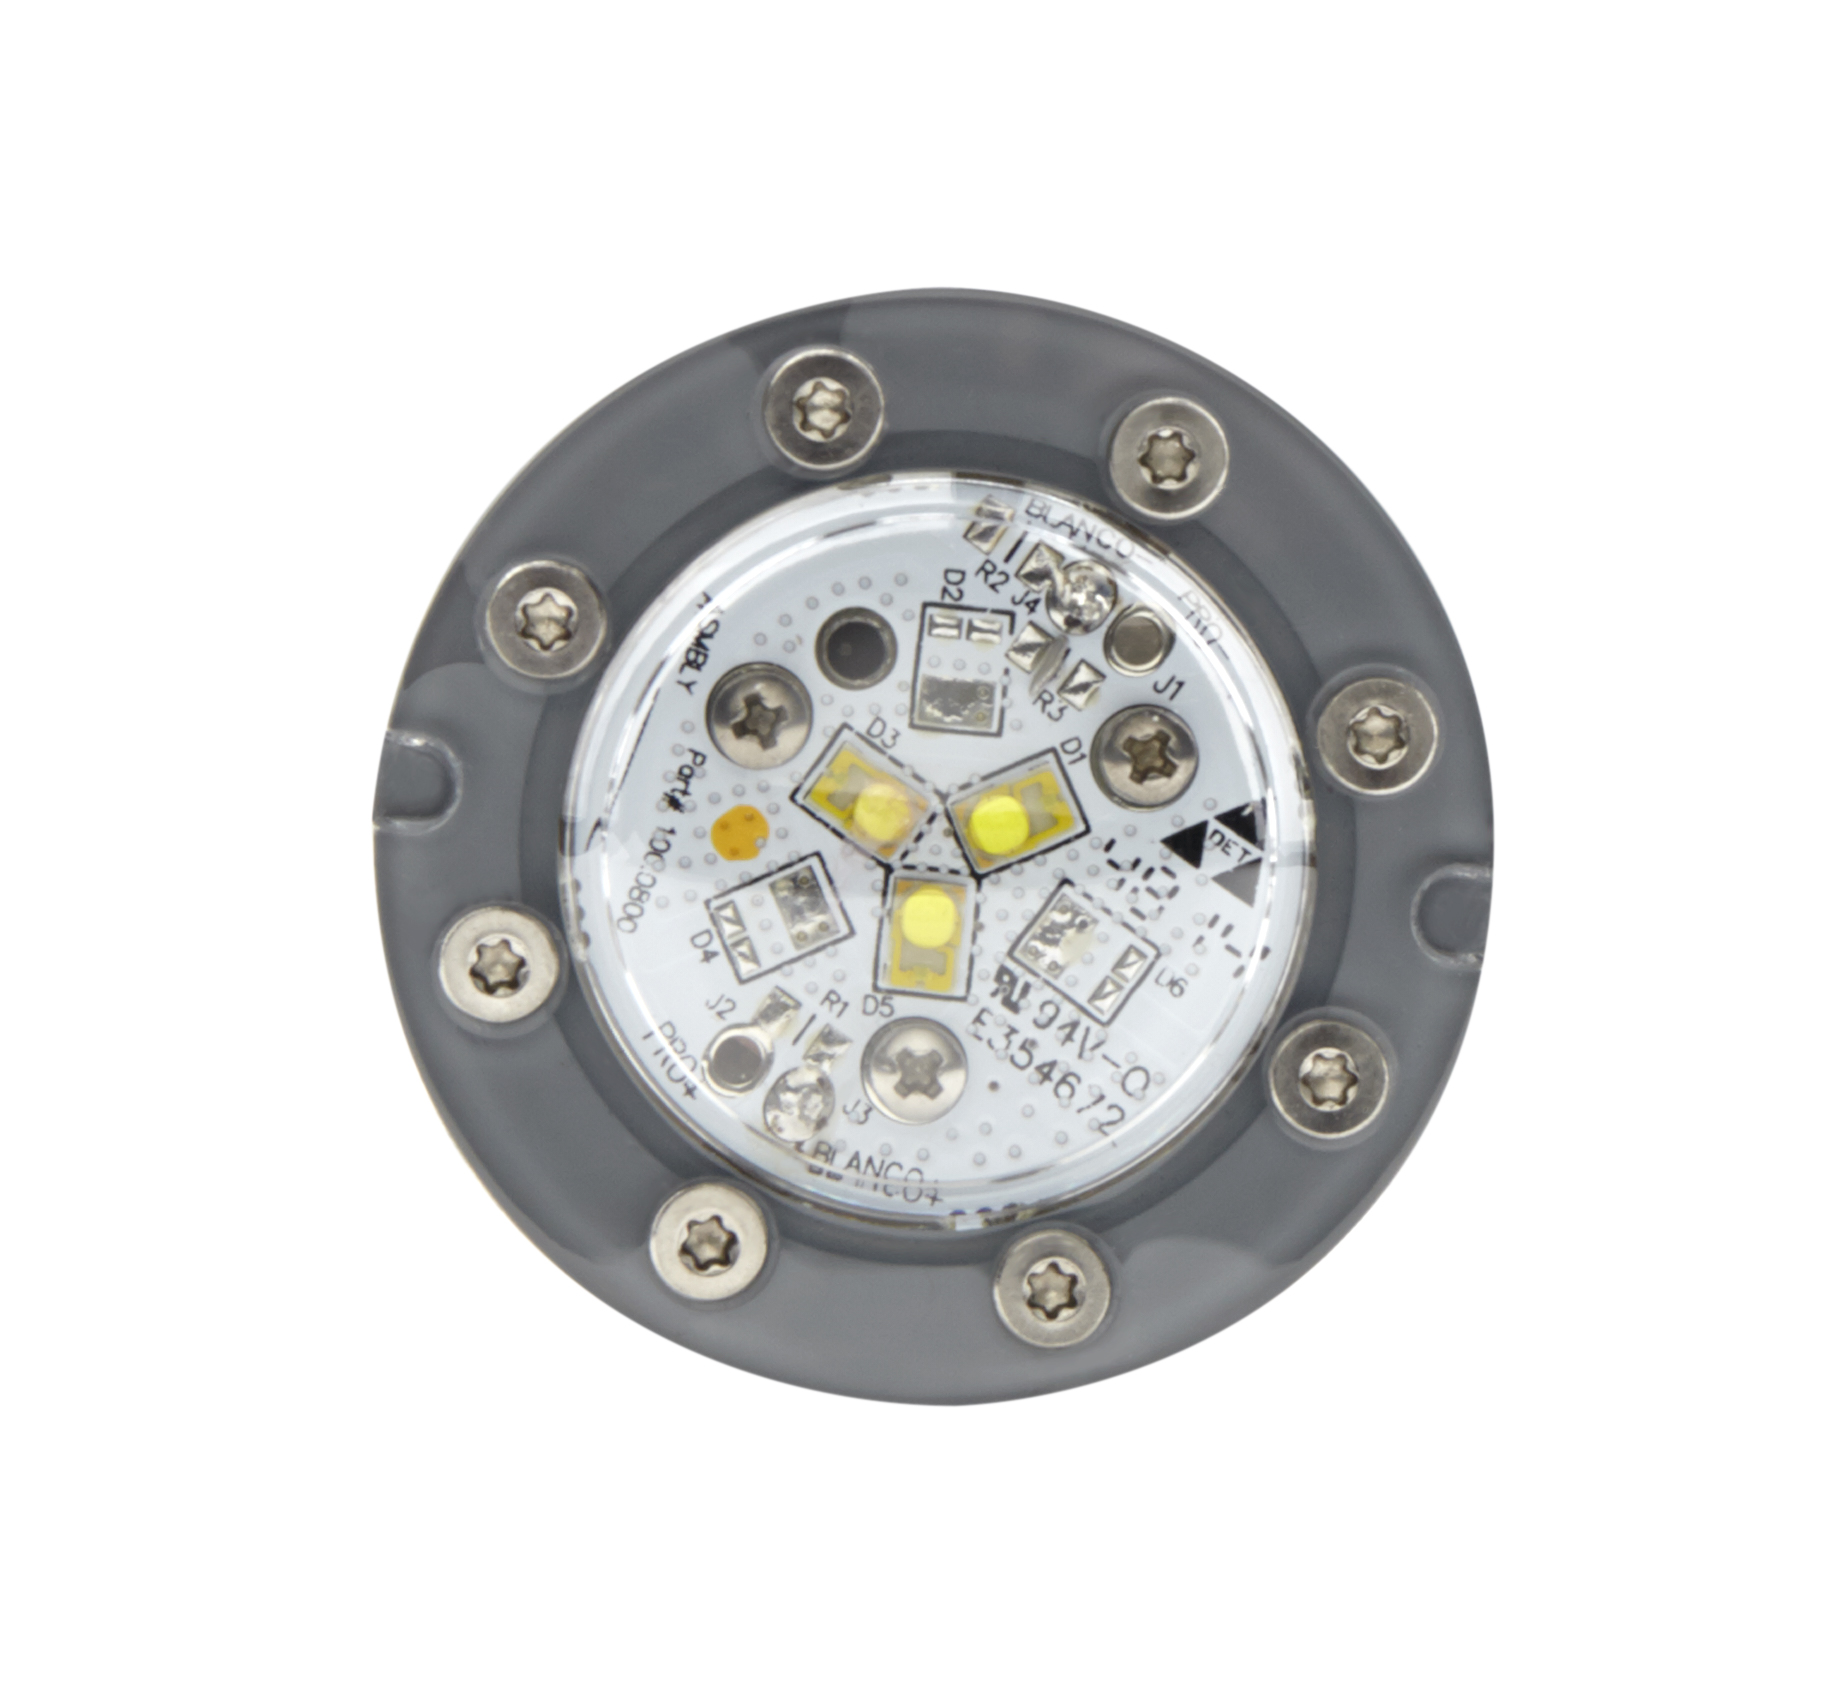 Nicheless Led Pool Lights Jandy Pro Series